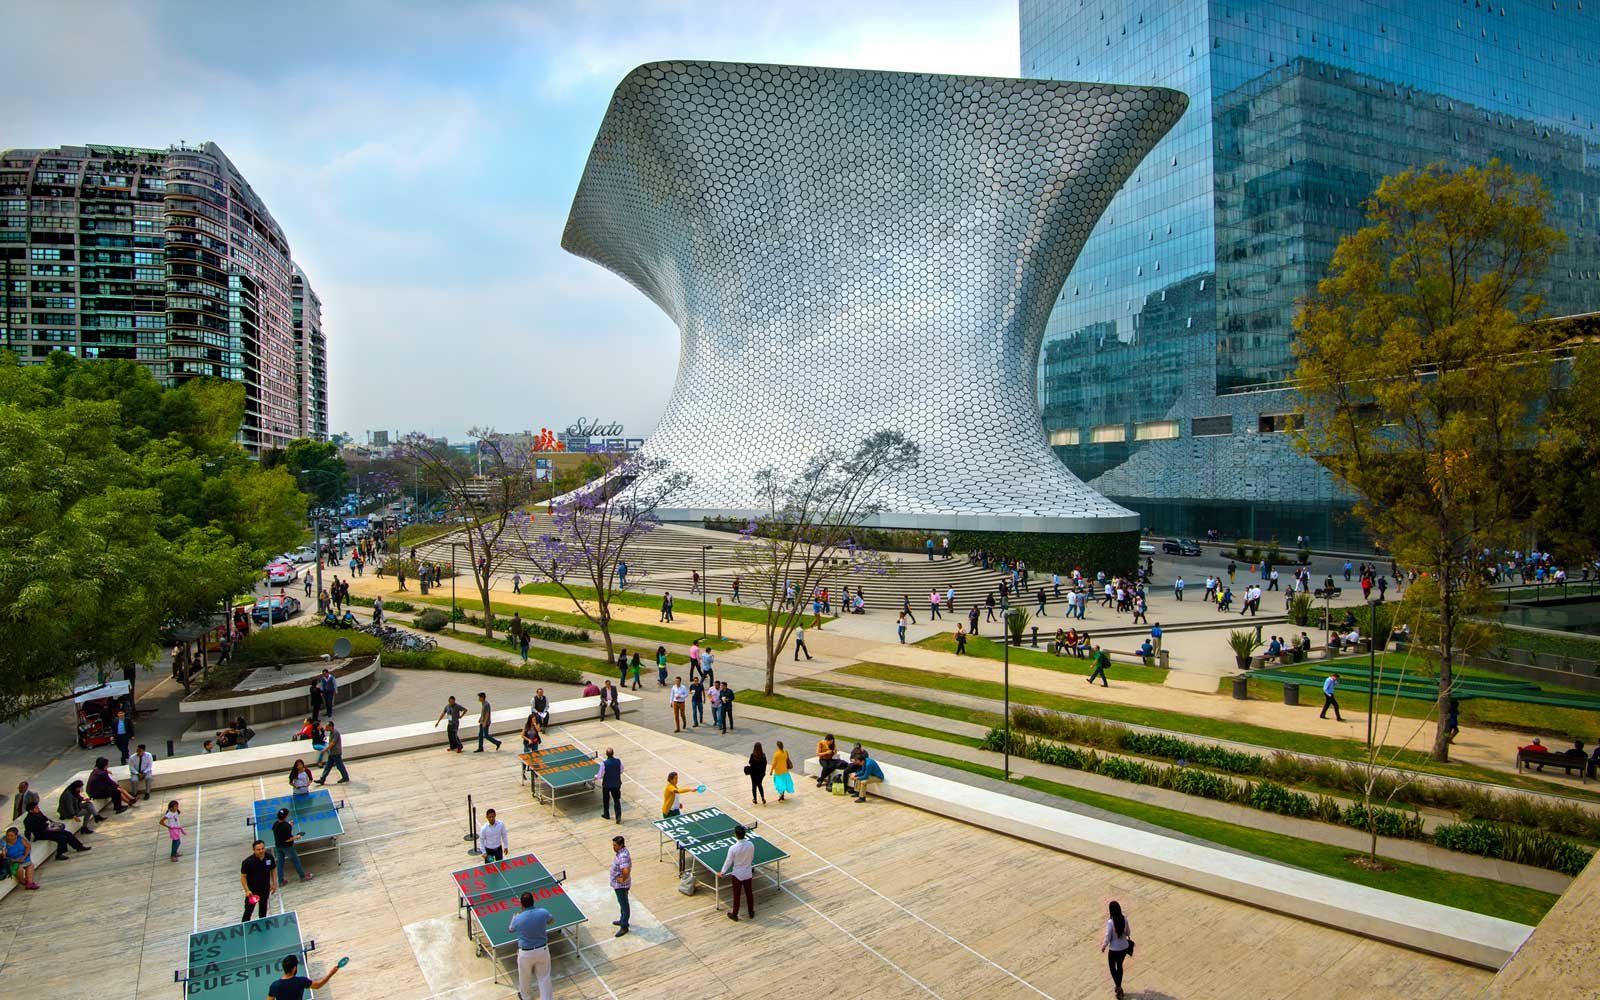 Soumaya Musuem stands in Plaza Carso in the Polanco district of Mexico City